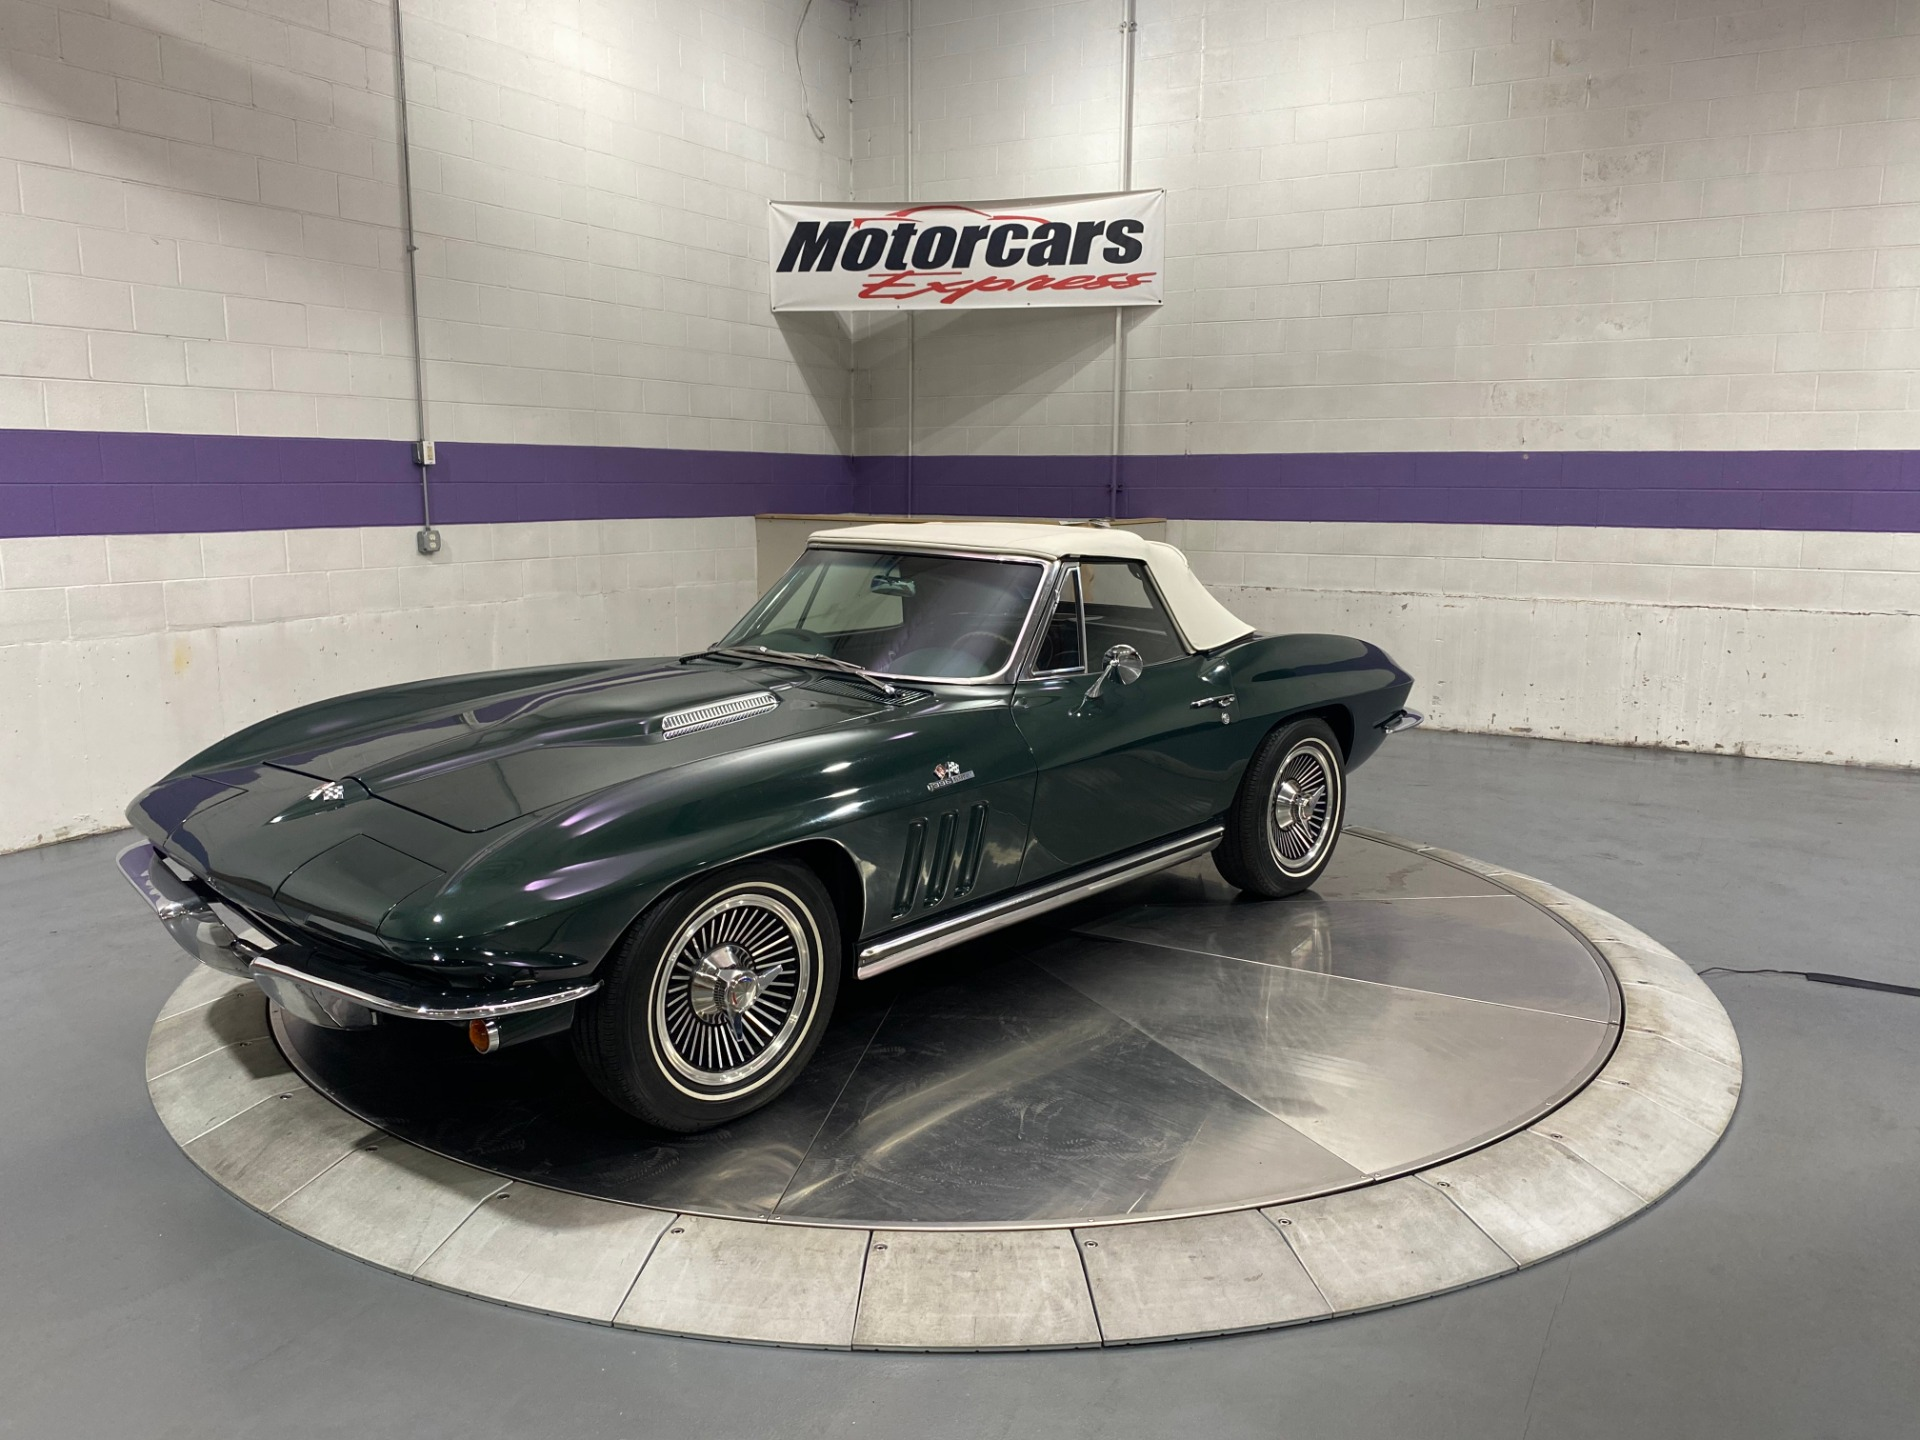 Used-1965-Chevrolet-Corvette-Stingray-Convertible-396-Turbo-Jet-425Hp-Numbers-Matching